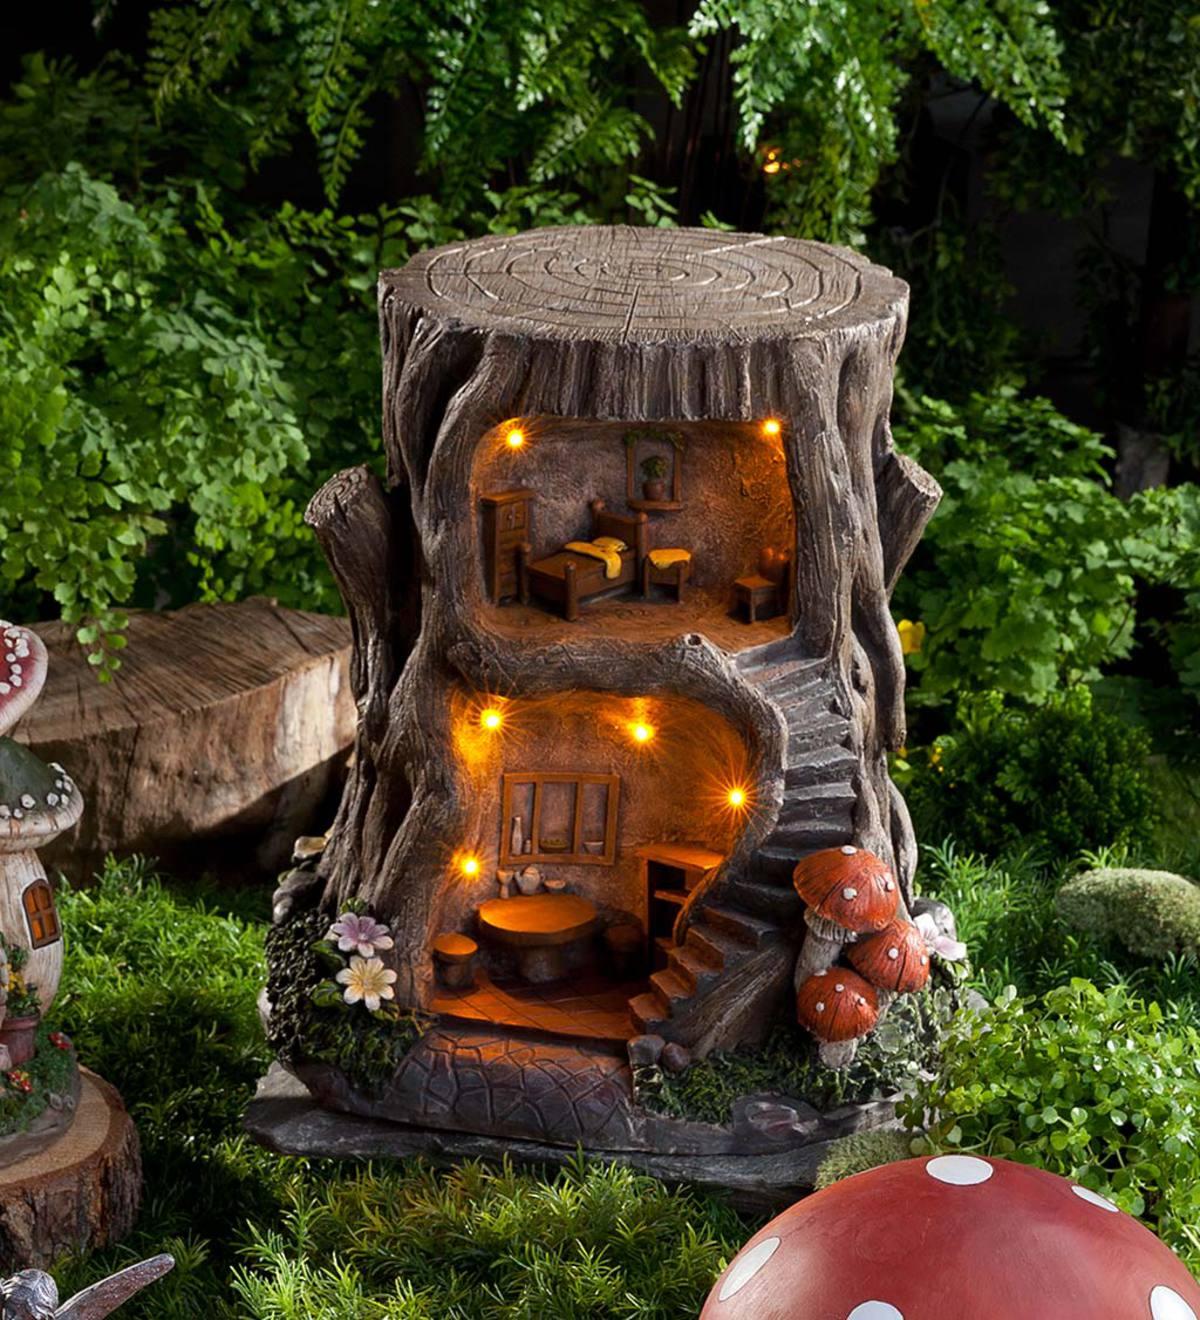 Lighted Fully-Furnished Fairy Dream House